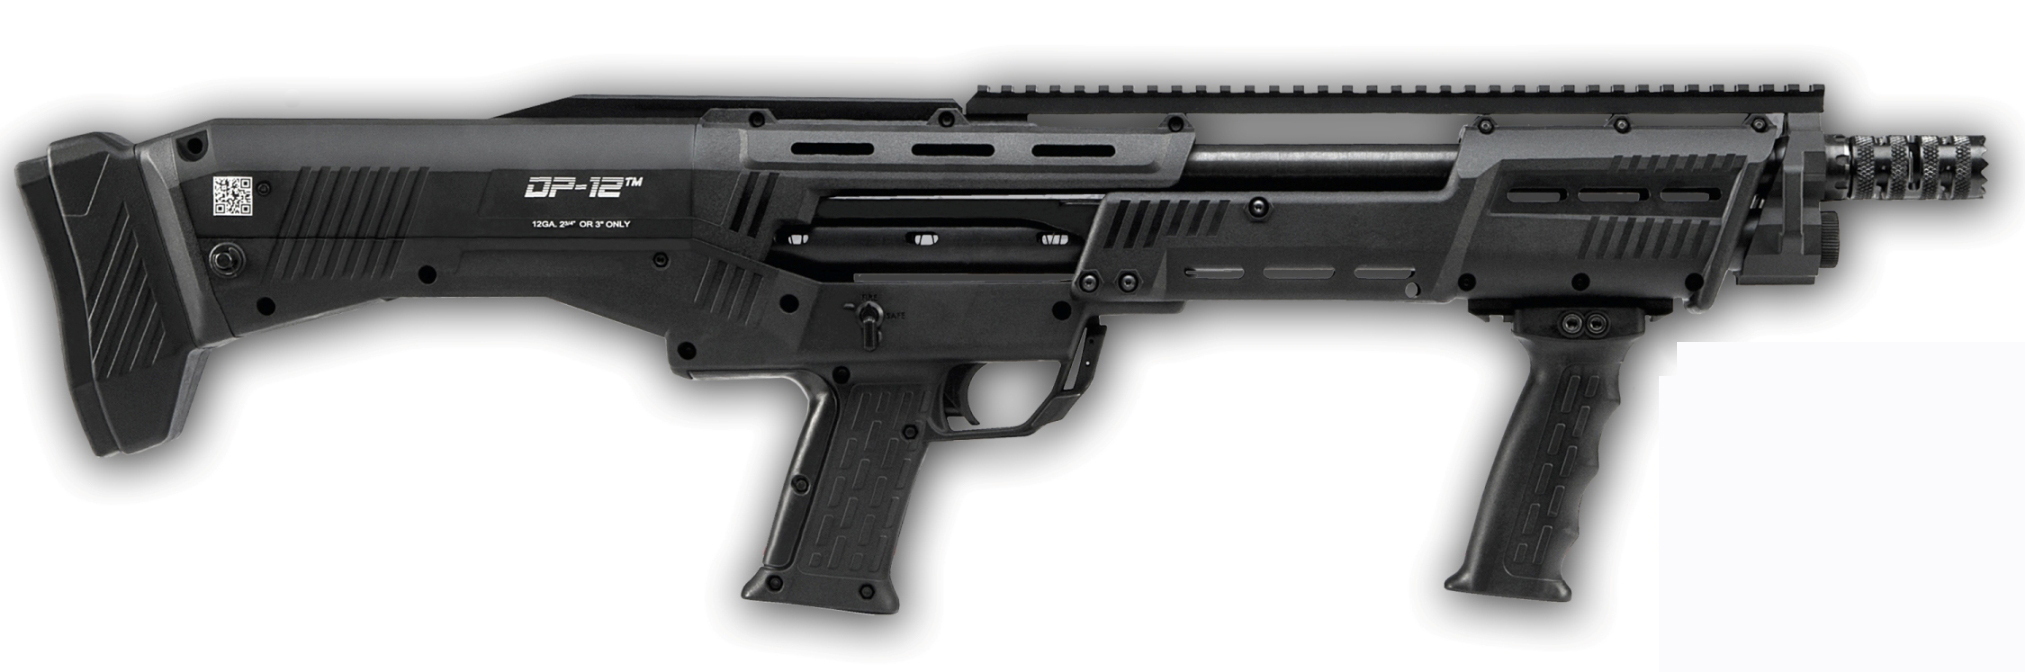 Double-barreled pump-action shotgun DP-12